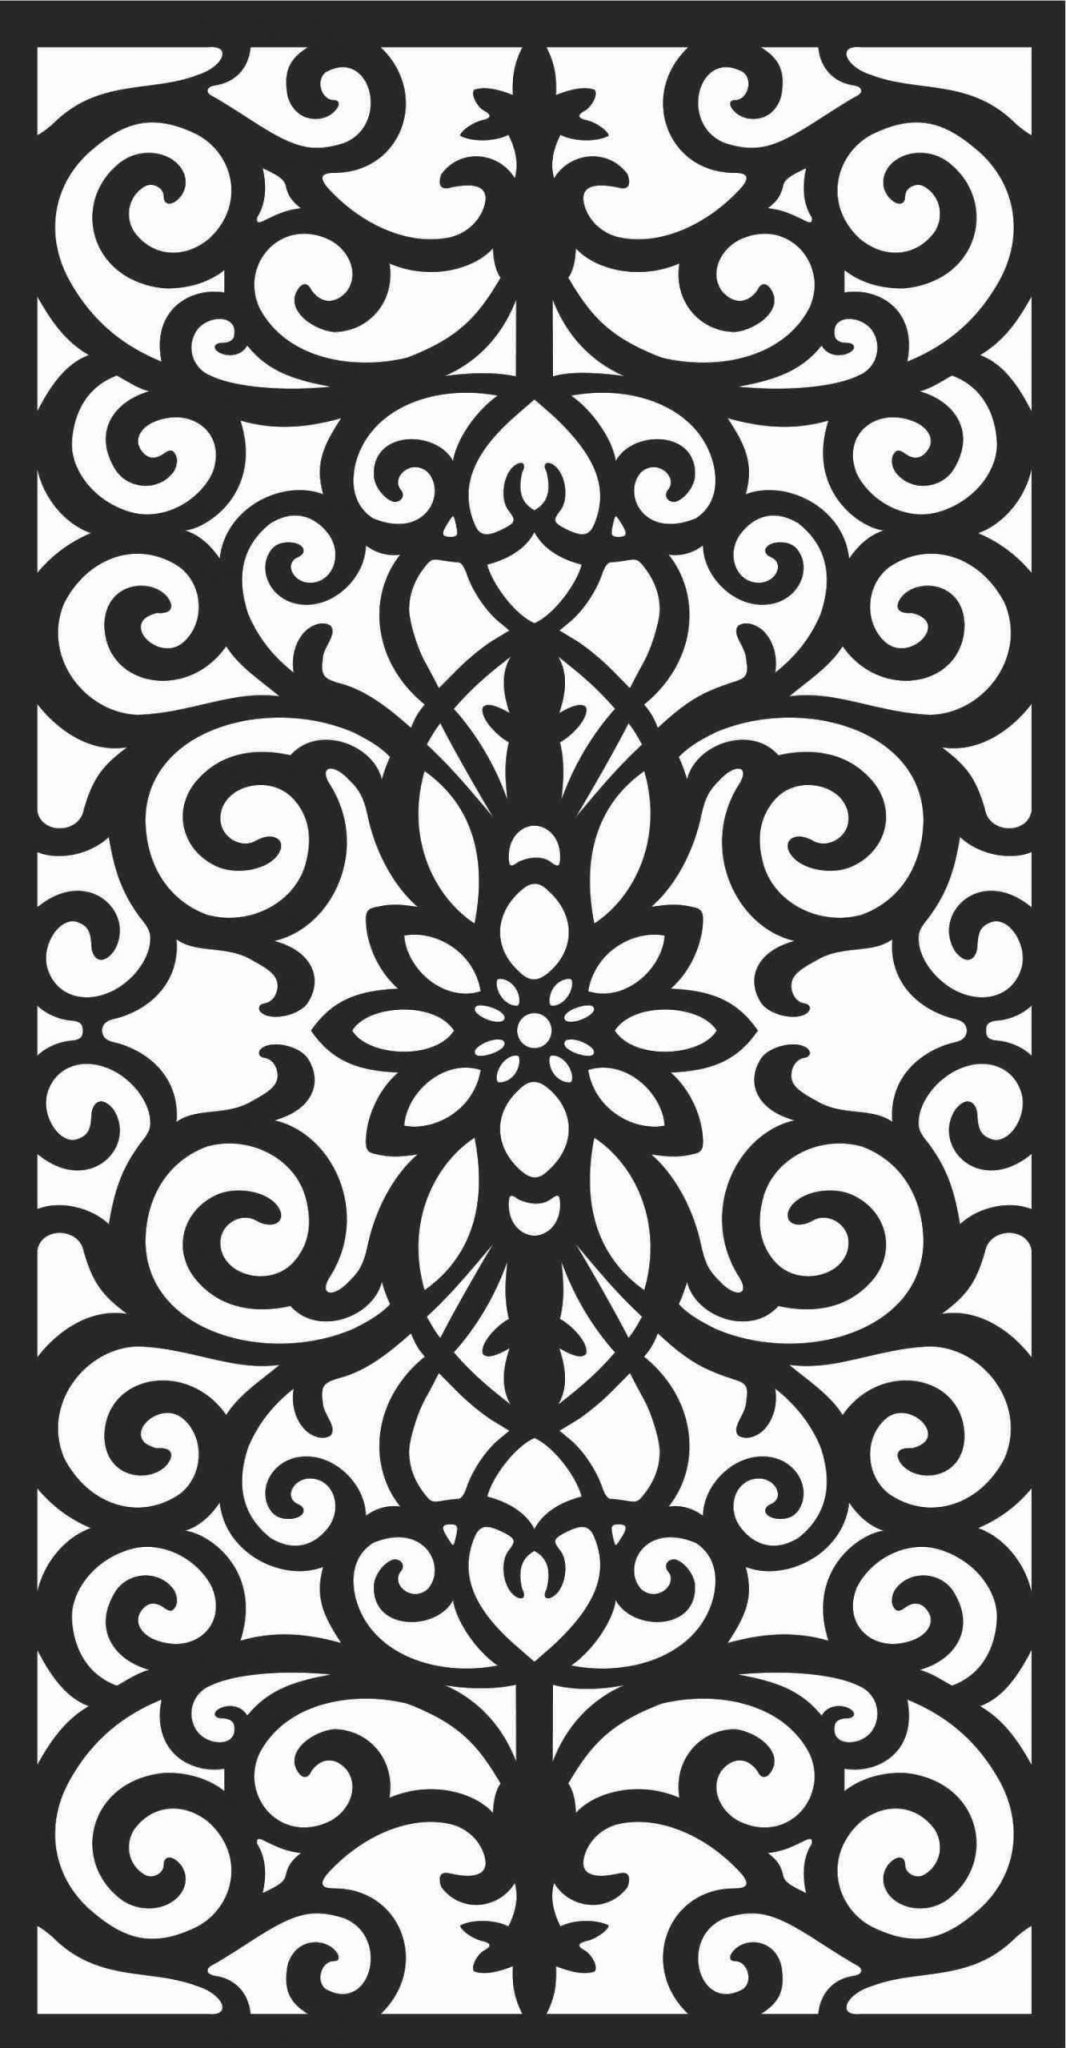 Decorative Screen Patterns For Laser Cutting 60 Free DXF File